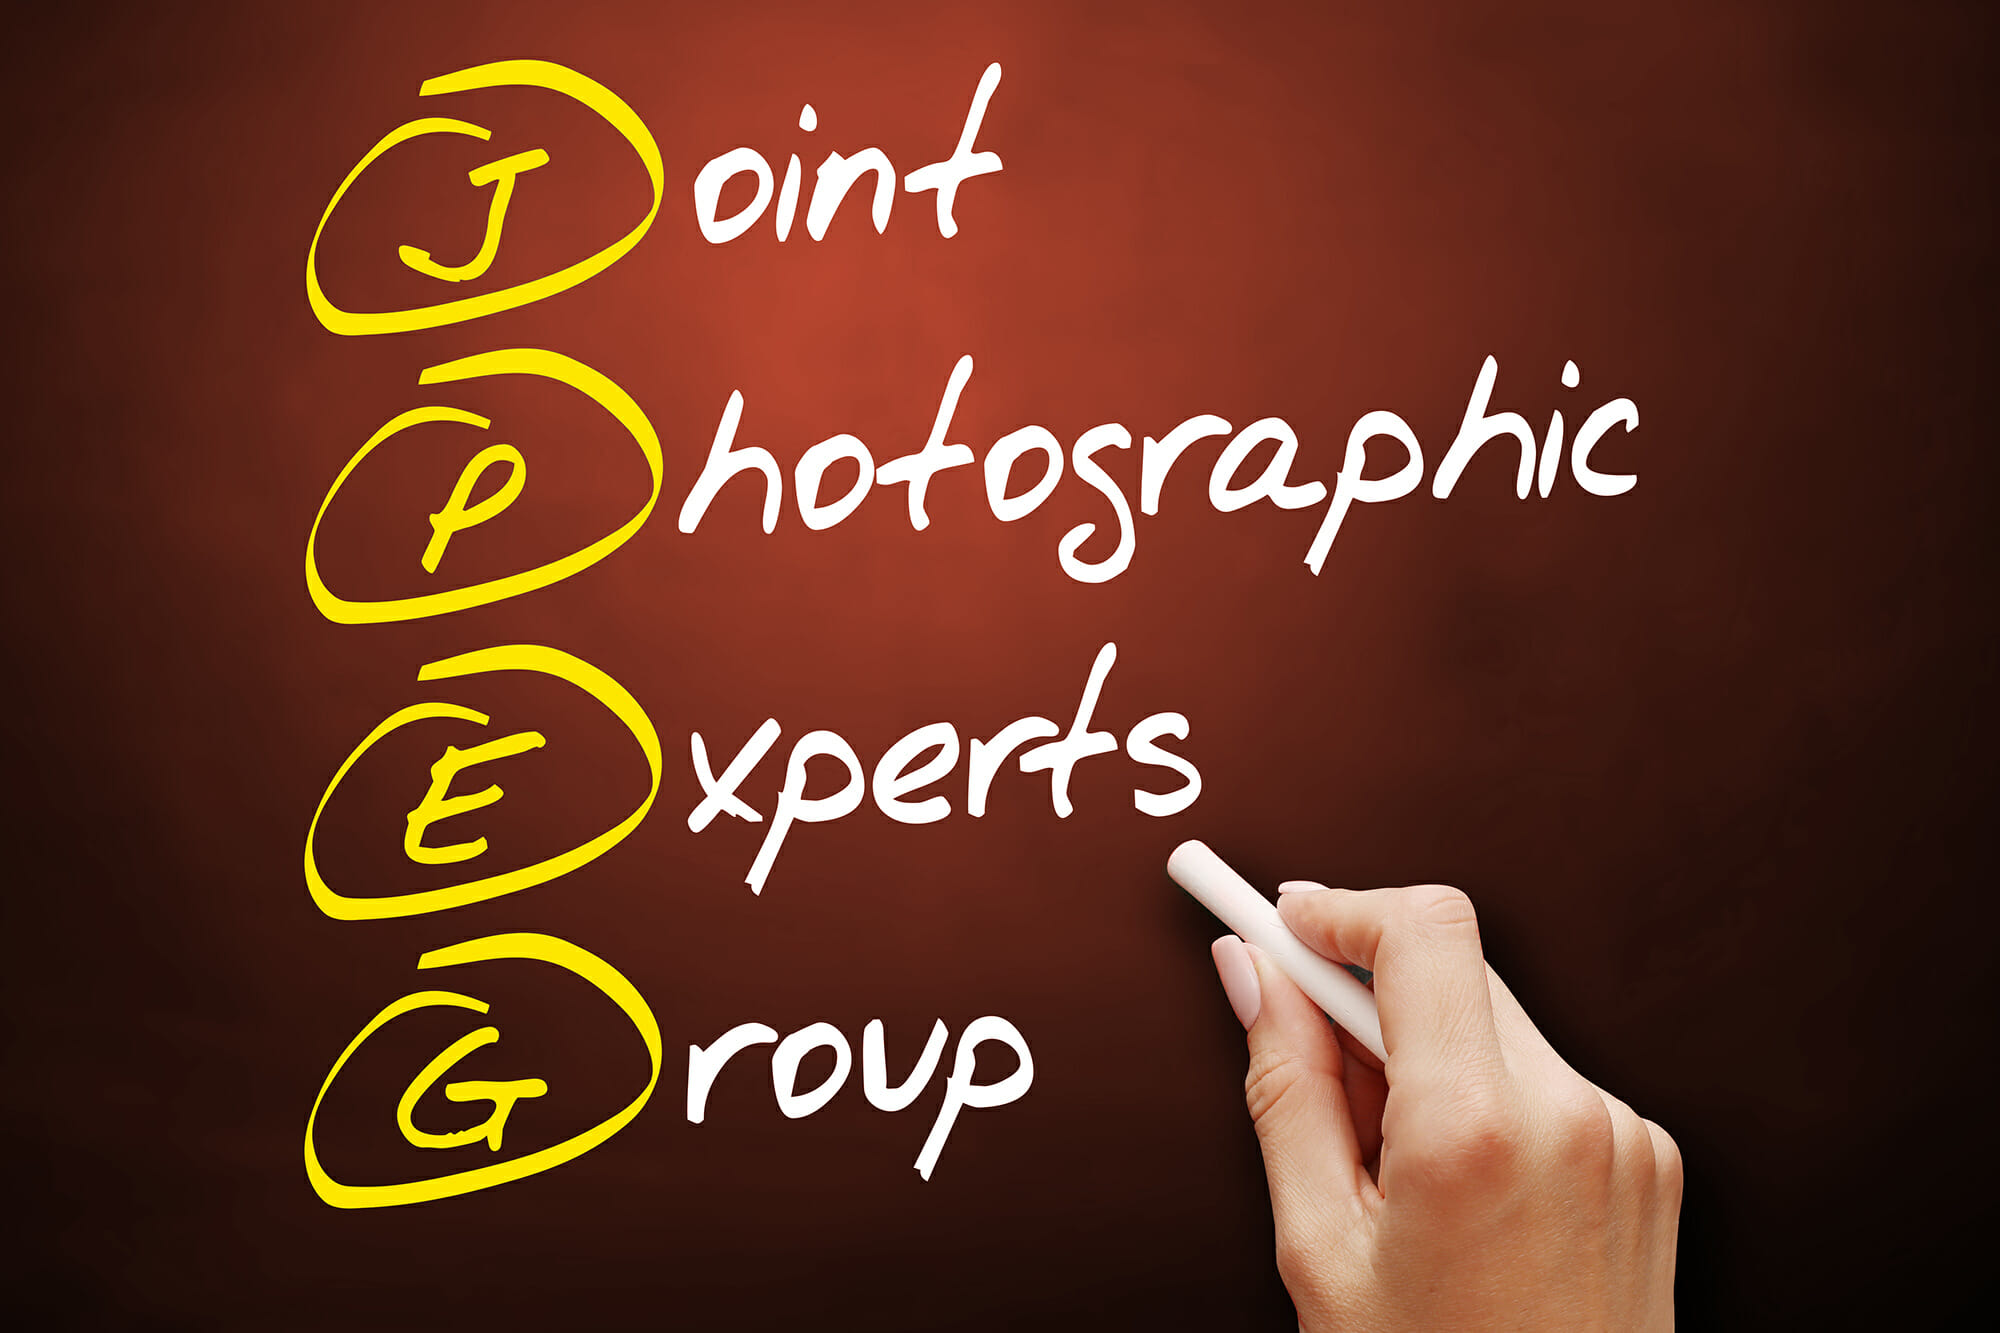 jpeg joint photographic experts group chalk hand chalkboard